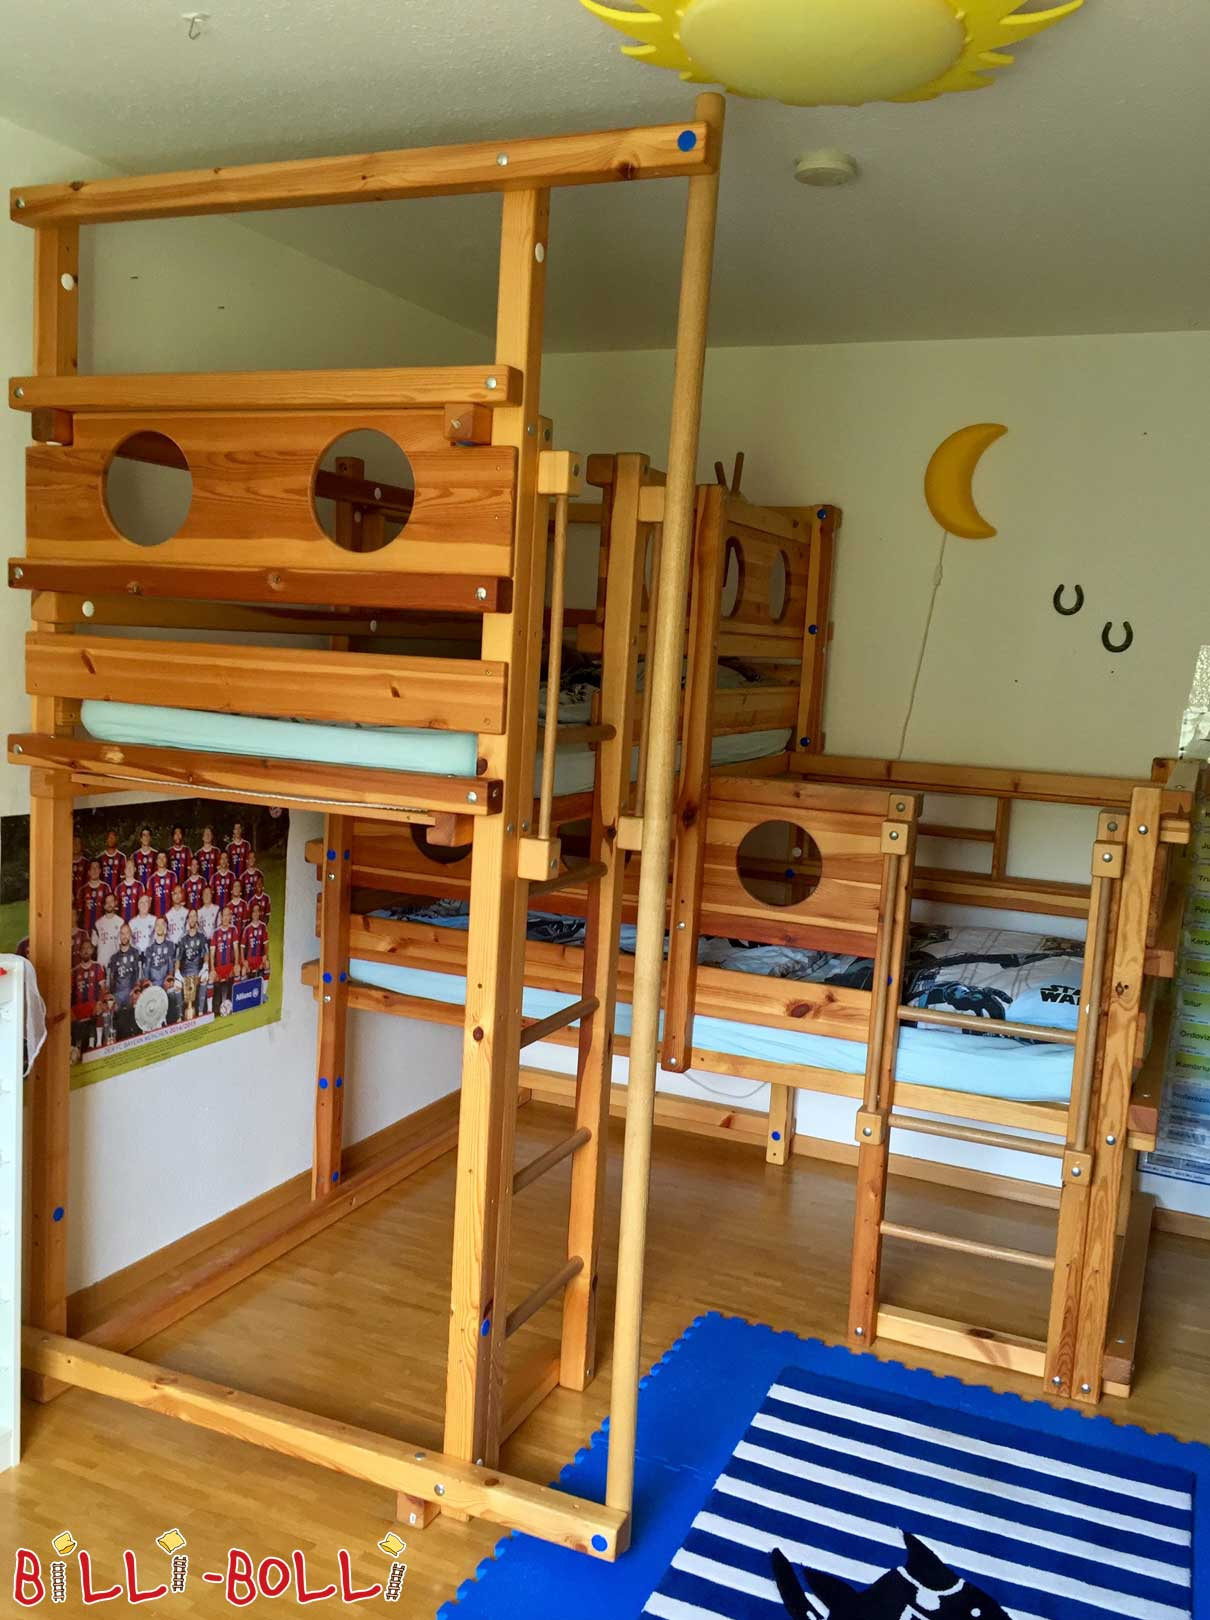 Both-up-bed-1 as type 1A, 90 x 200 cm, pine oil waxed (second hand baby crib)